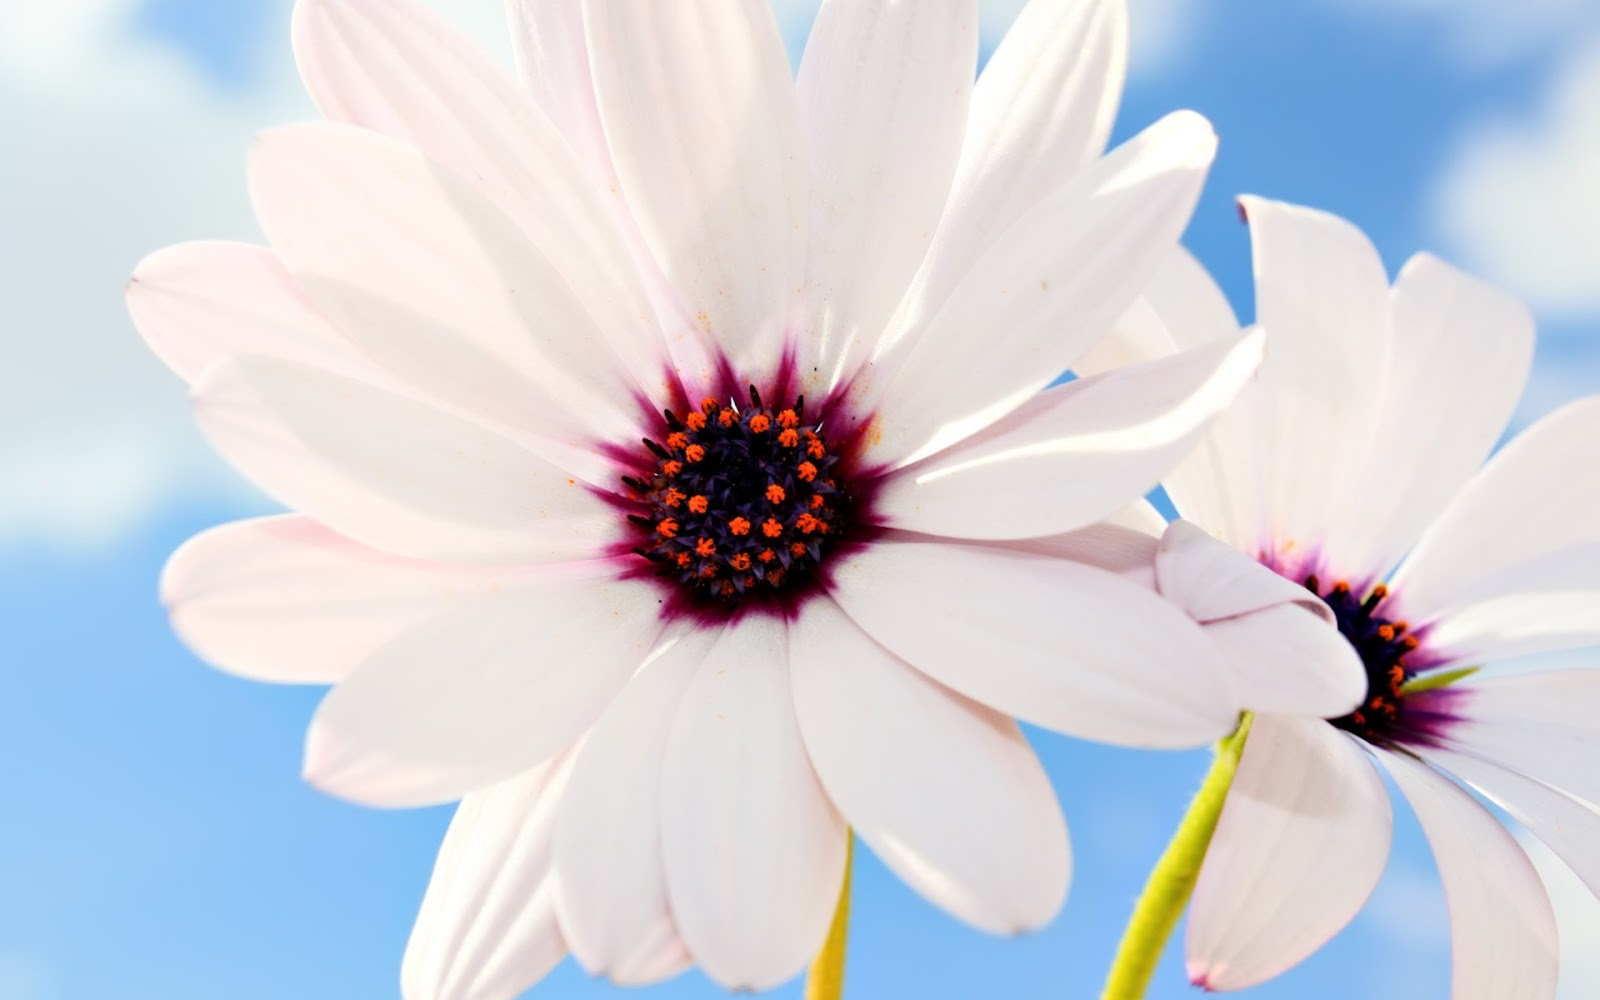 flowers for flower lovers.: Flowers wallpapers HD.